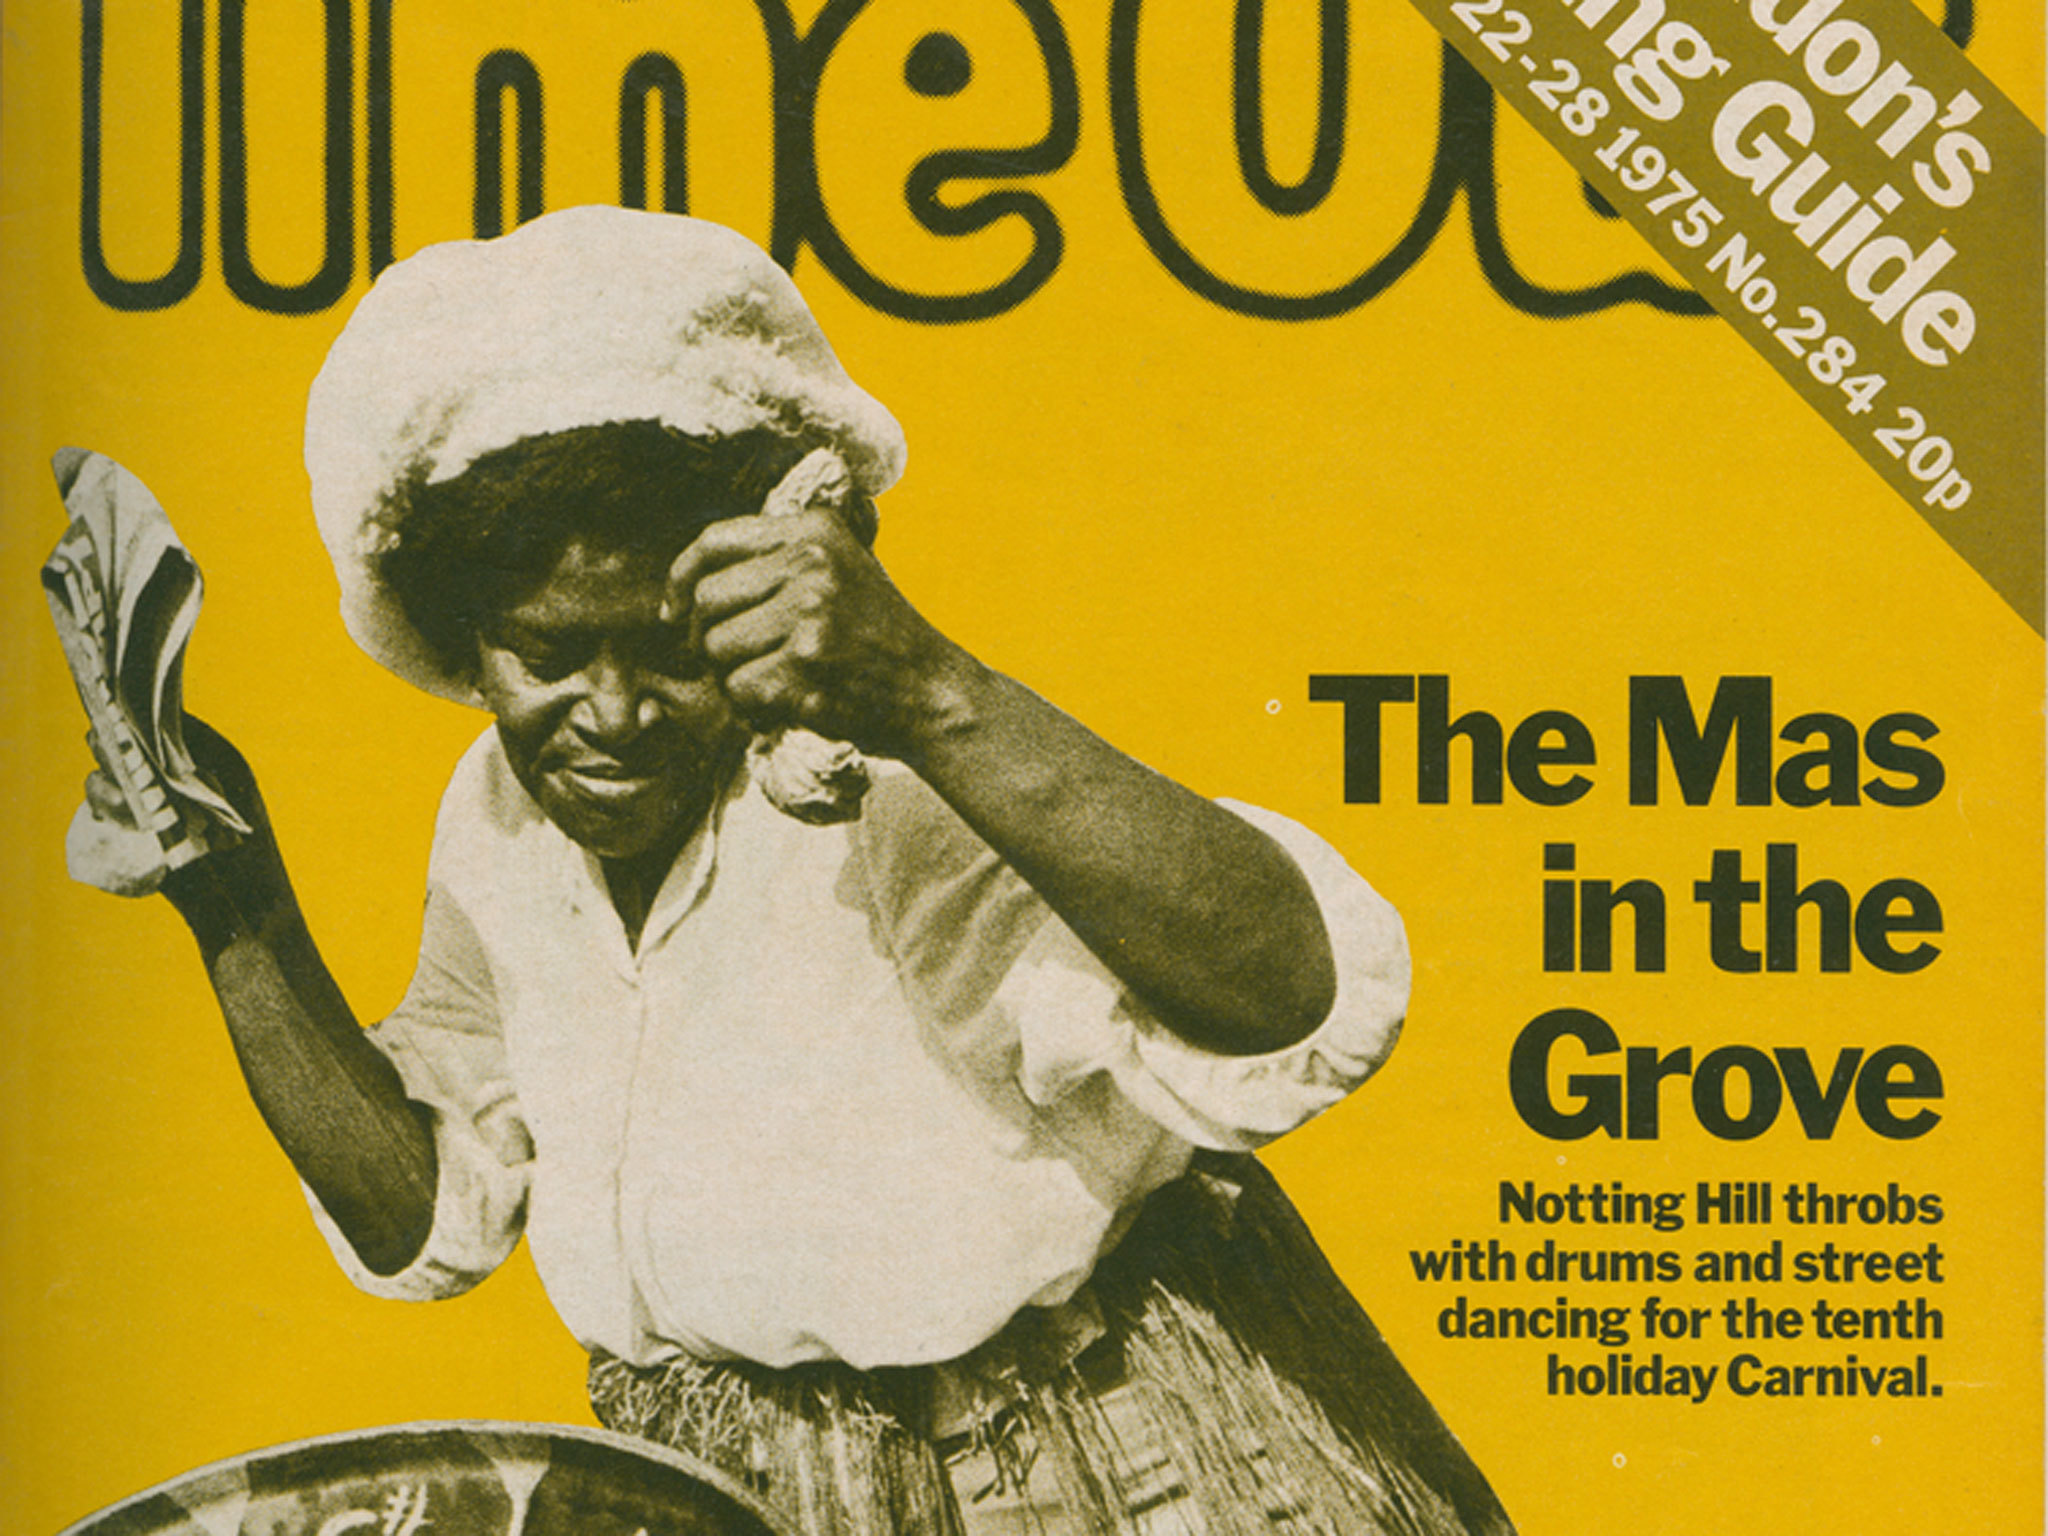 Notting Hill Carnival from the Time Out archive